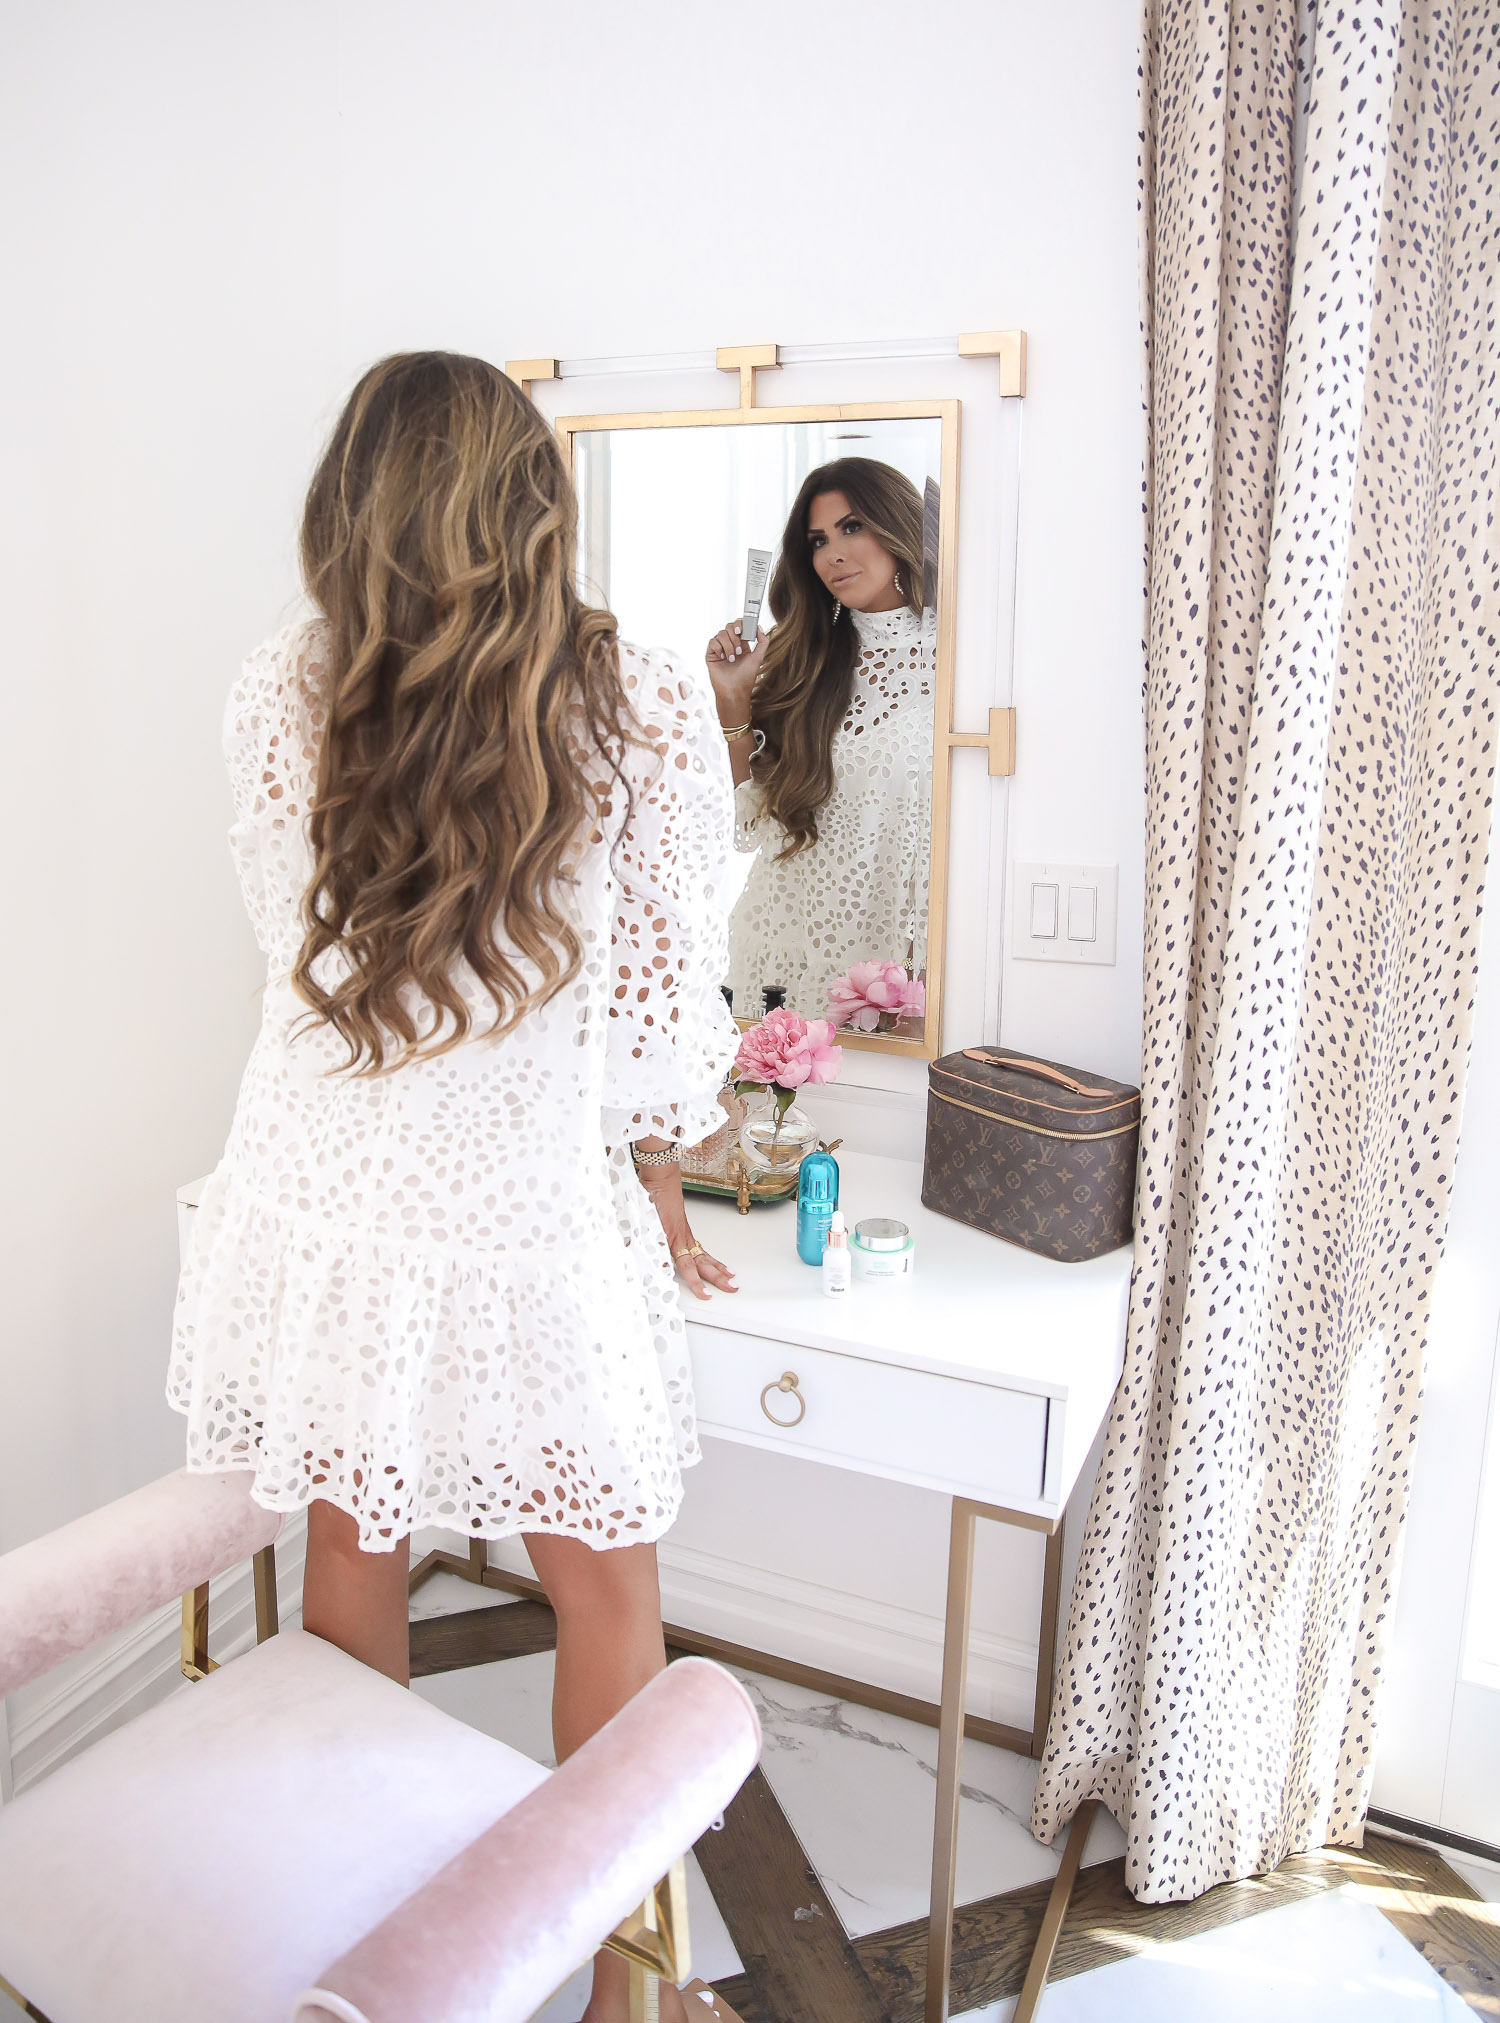 Dr Brandt Pore Refiner Primer by popular US beauty blog, The Sweetest Thing: image of Emily Gemma wearing a H & M Eyelet Embroidery Dress and holding a bottle of Dr Brandt Pore Refiner Primer while standing at her vanity.